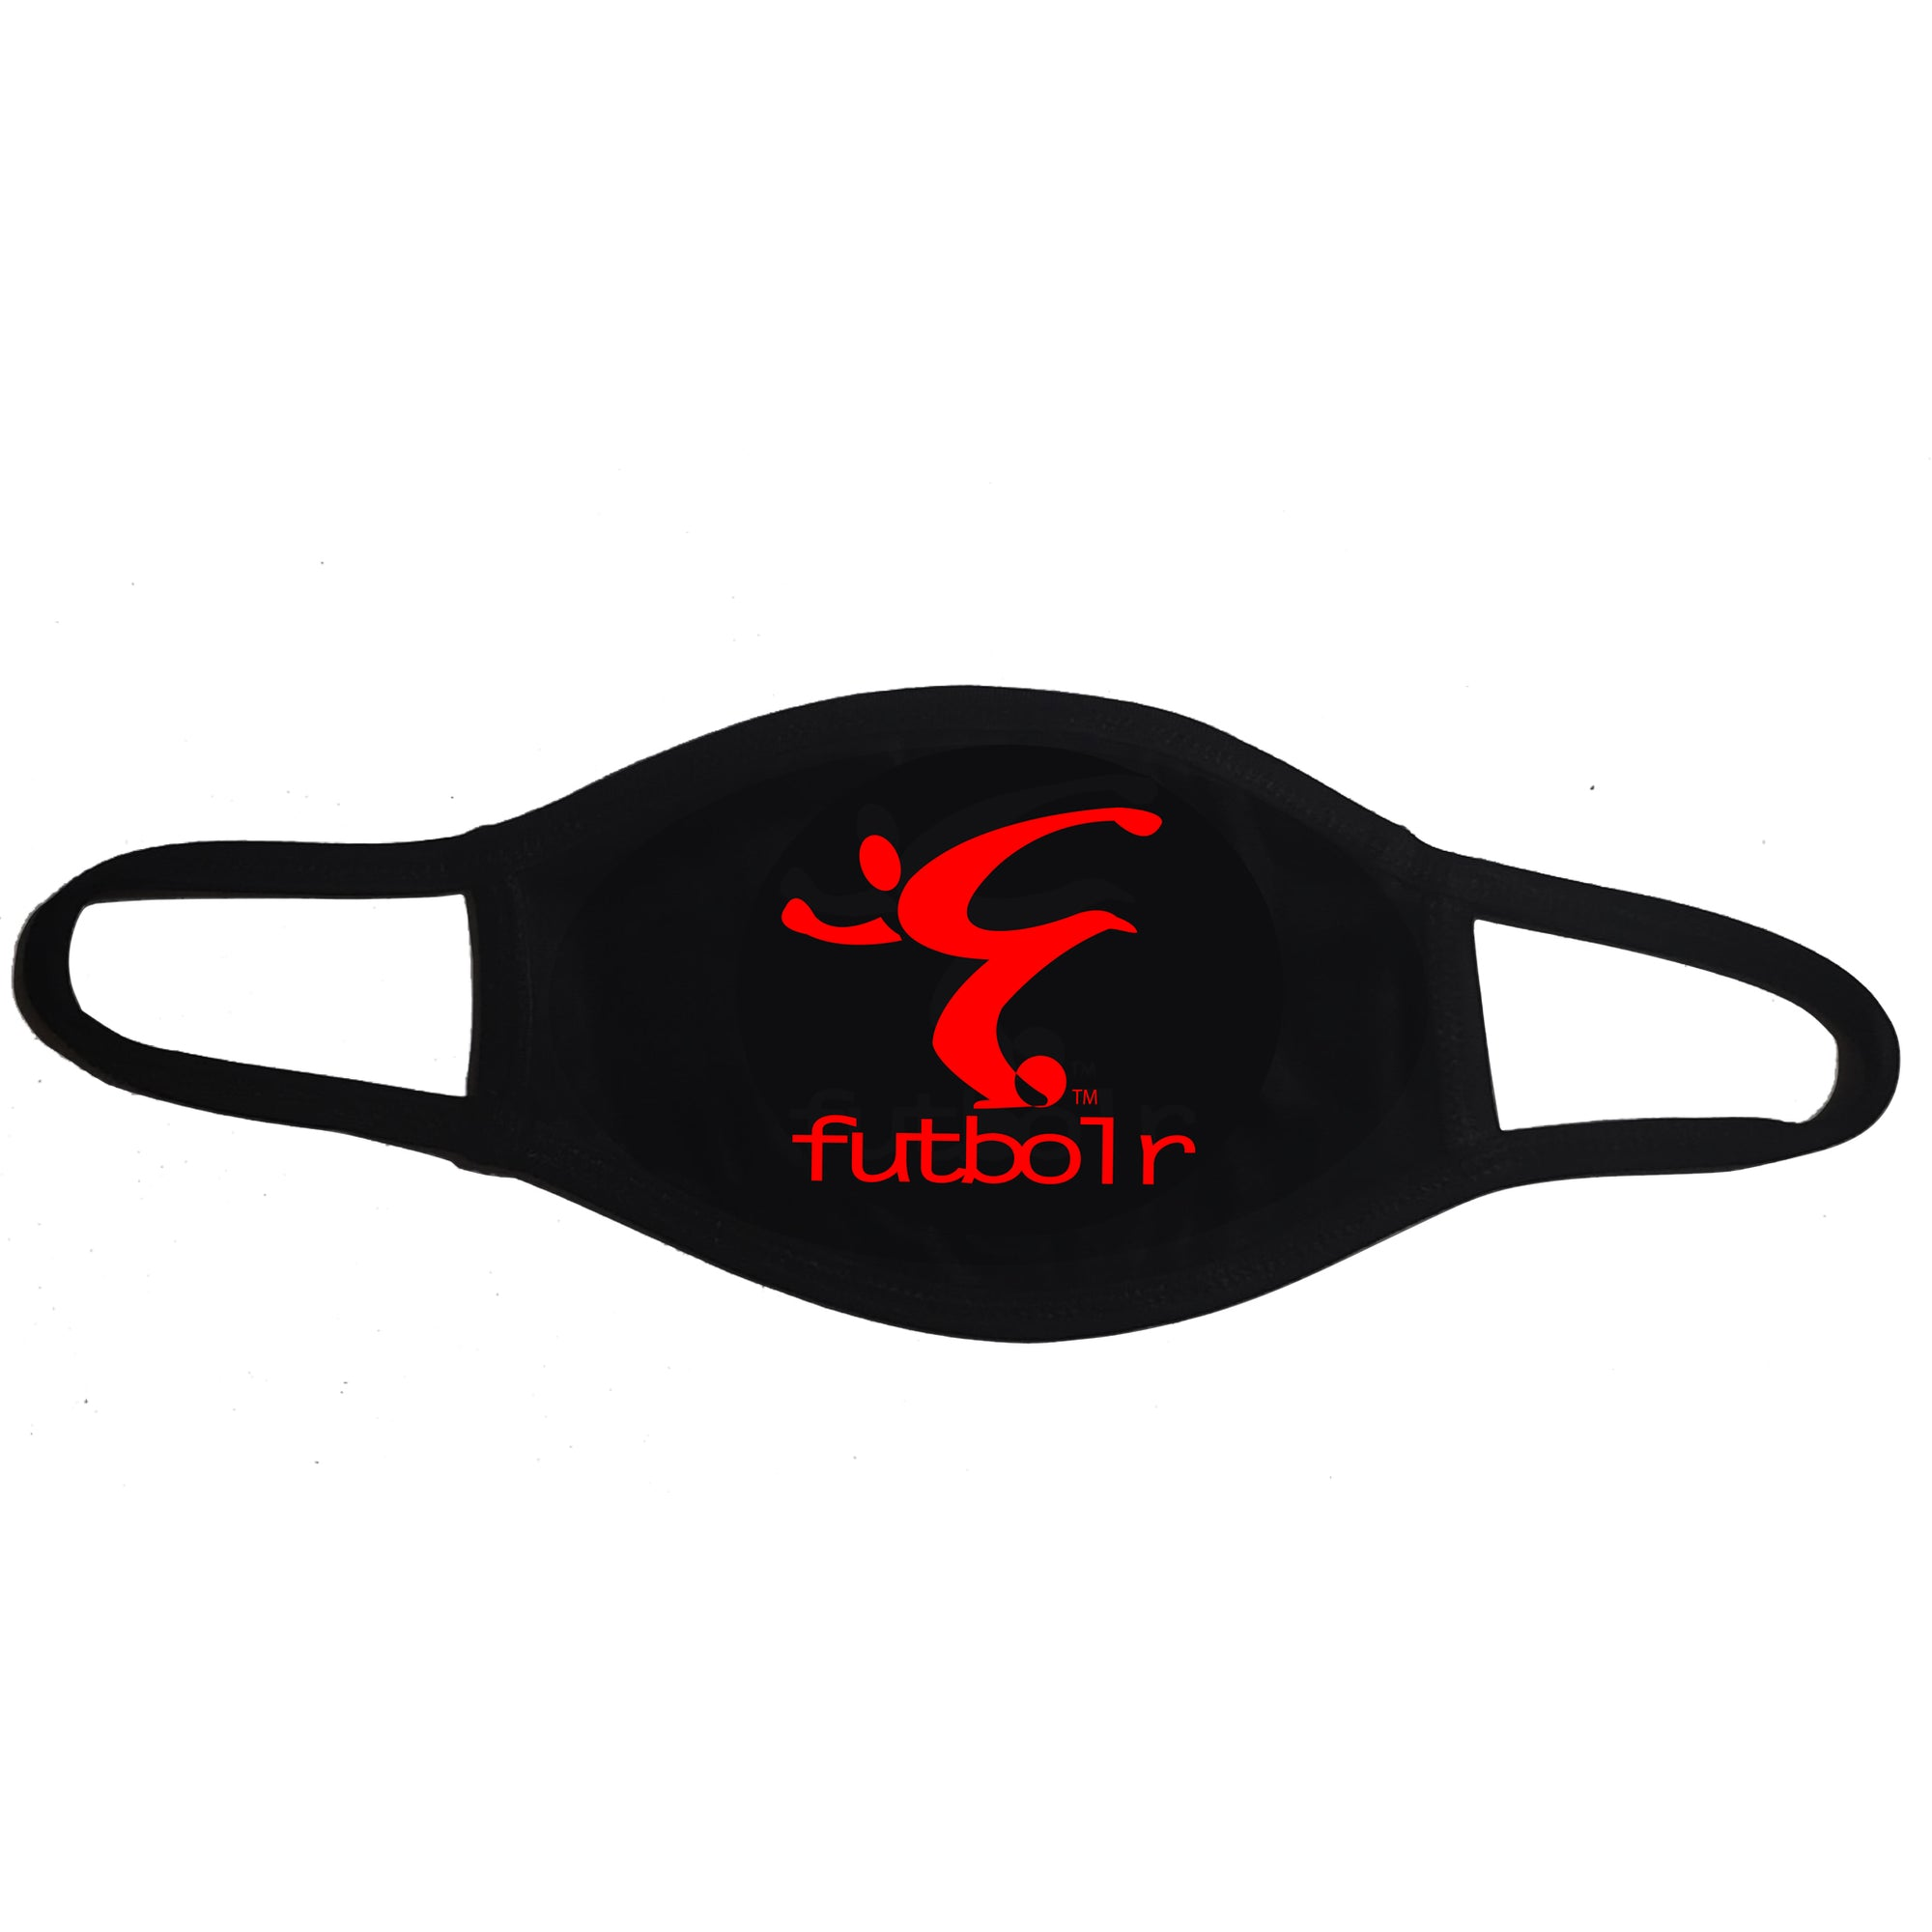 Futbolr Face Mask - Red